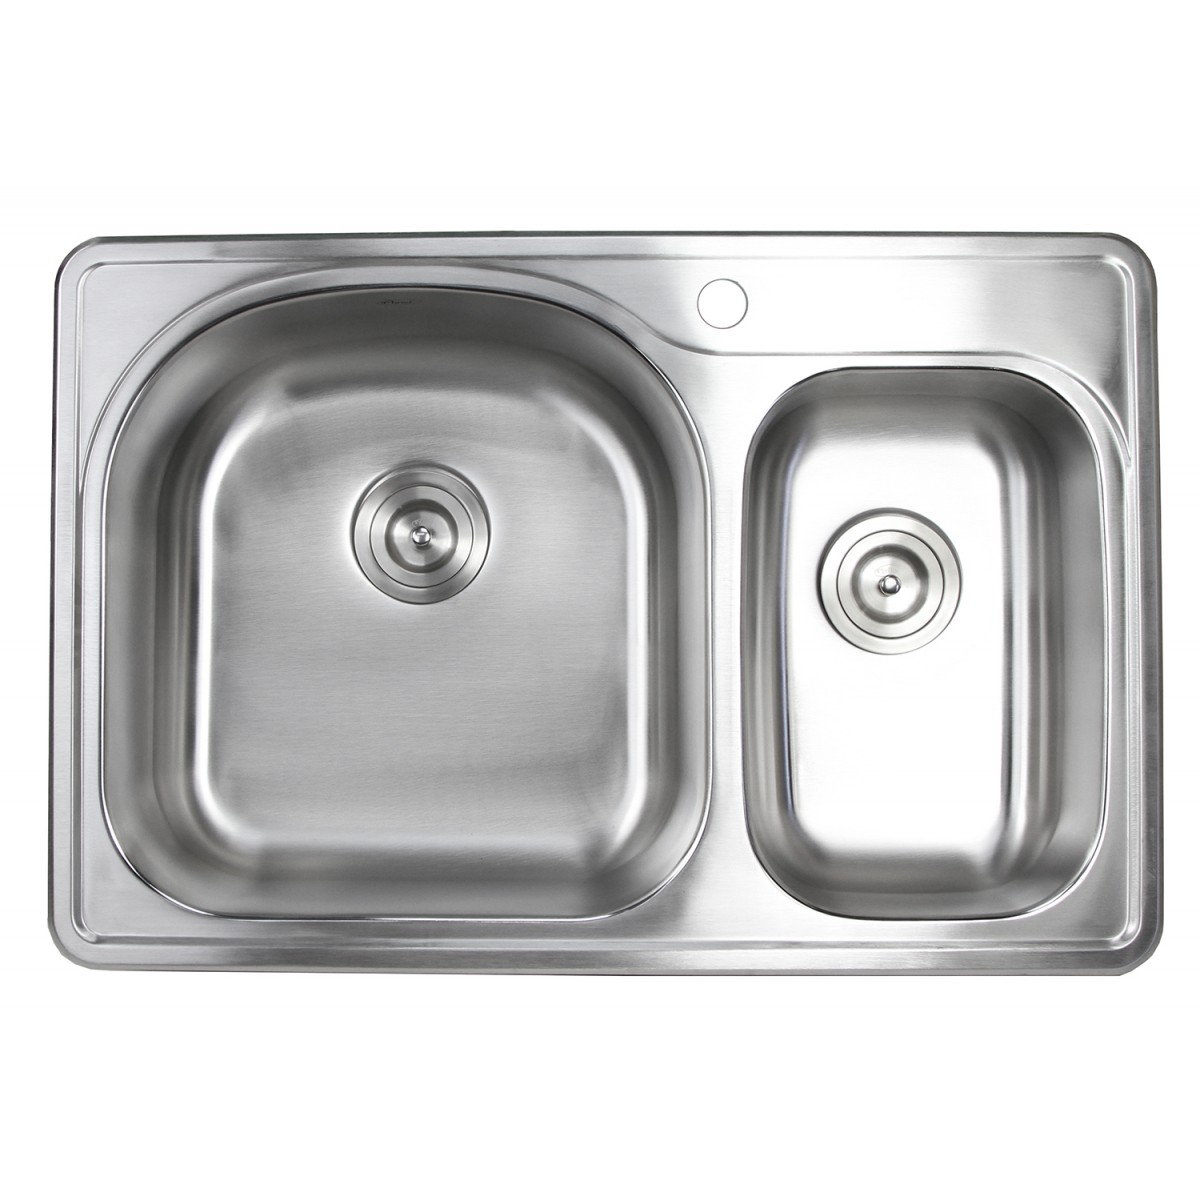 30 inch drop in kitchen sink 33 inch top mount drop in stainless steel 70 30 8983